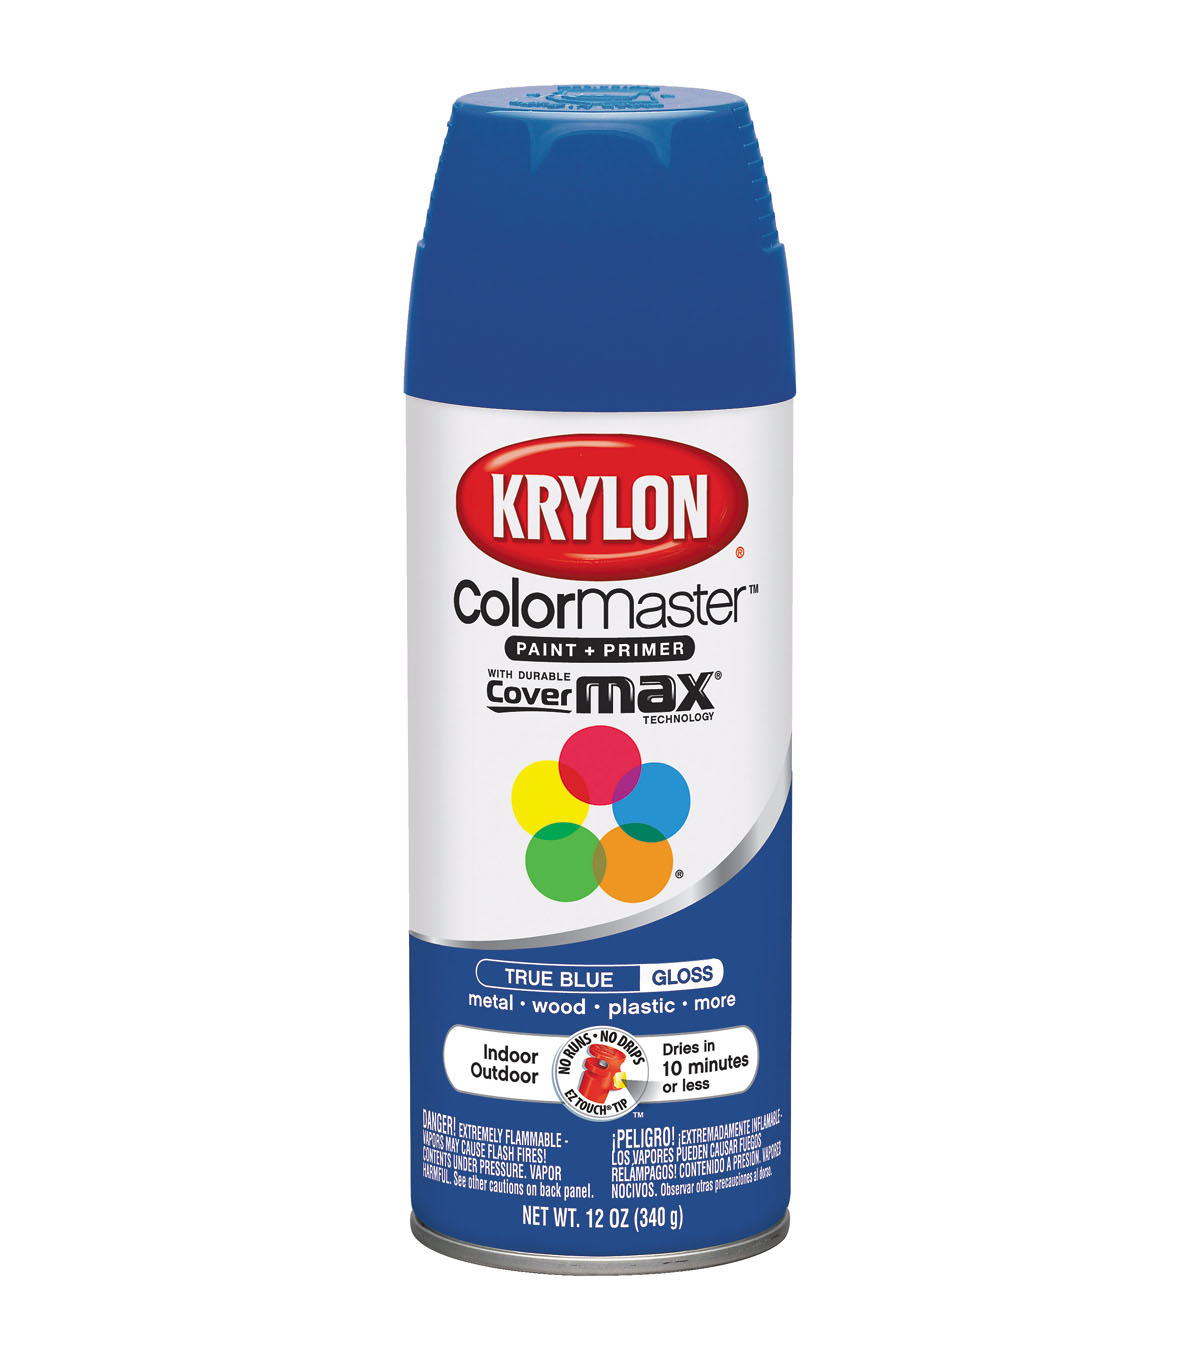 Krylon ColorMaster 12 oz. Interior/Exterior Paint Plus Primer